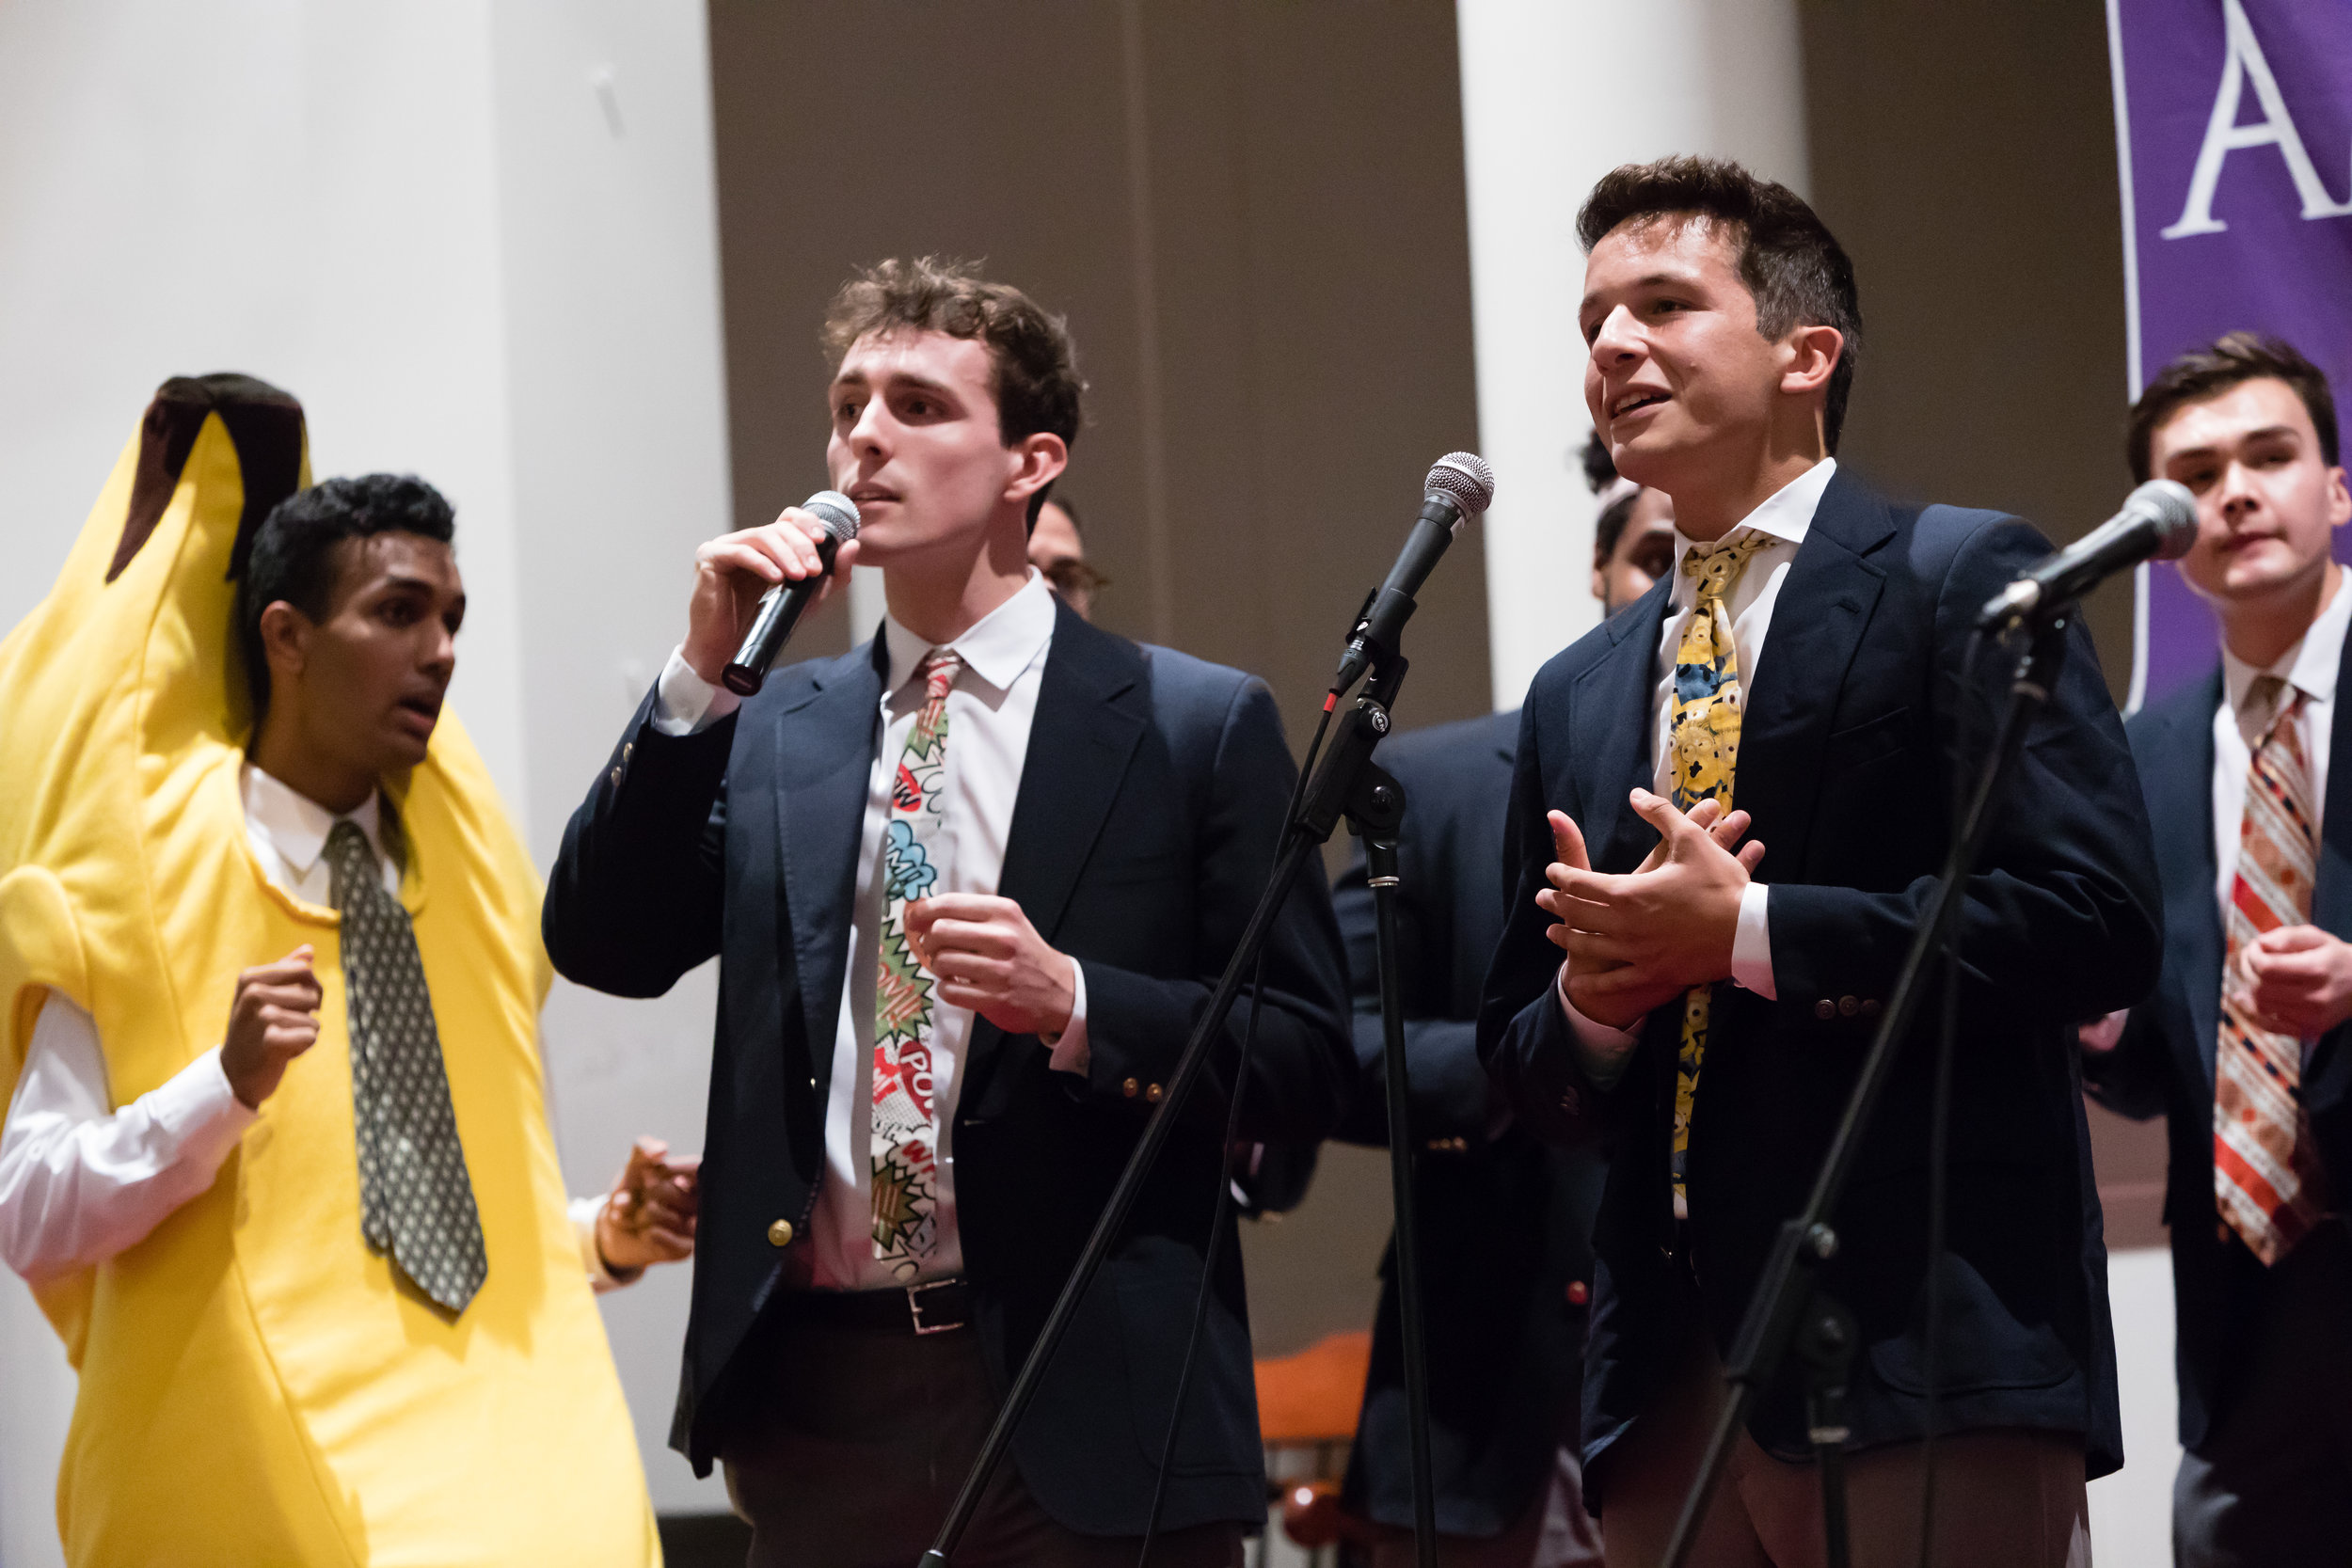 2017_1104_Family Weekend_Acapella Showcase_TT_320.jpg